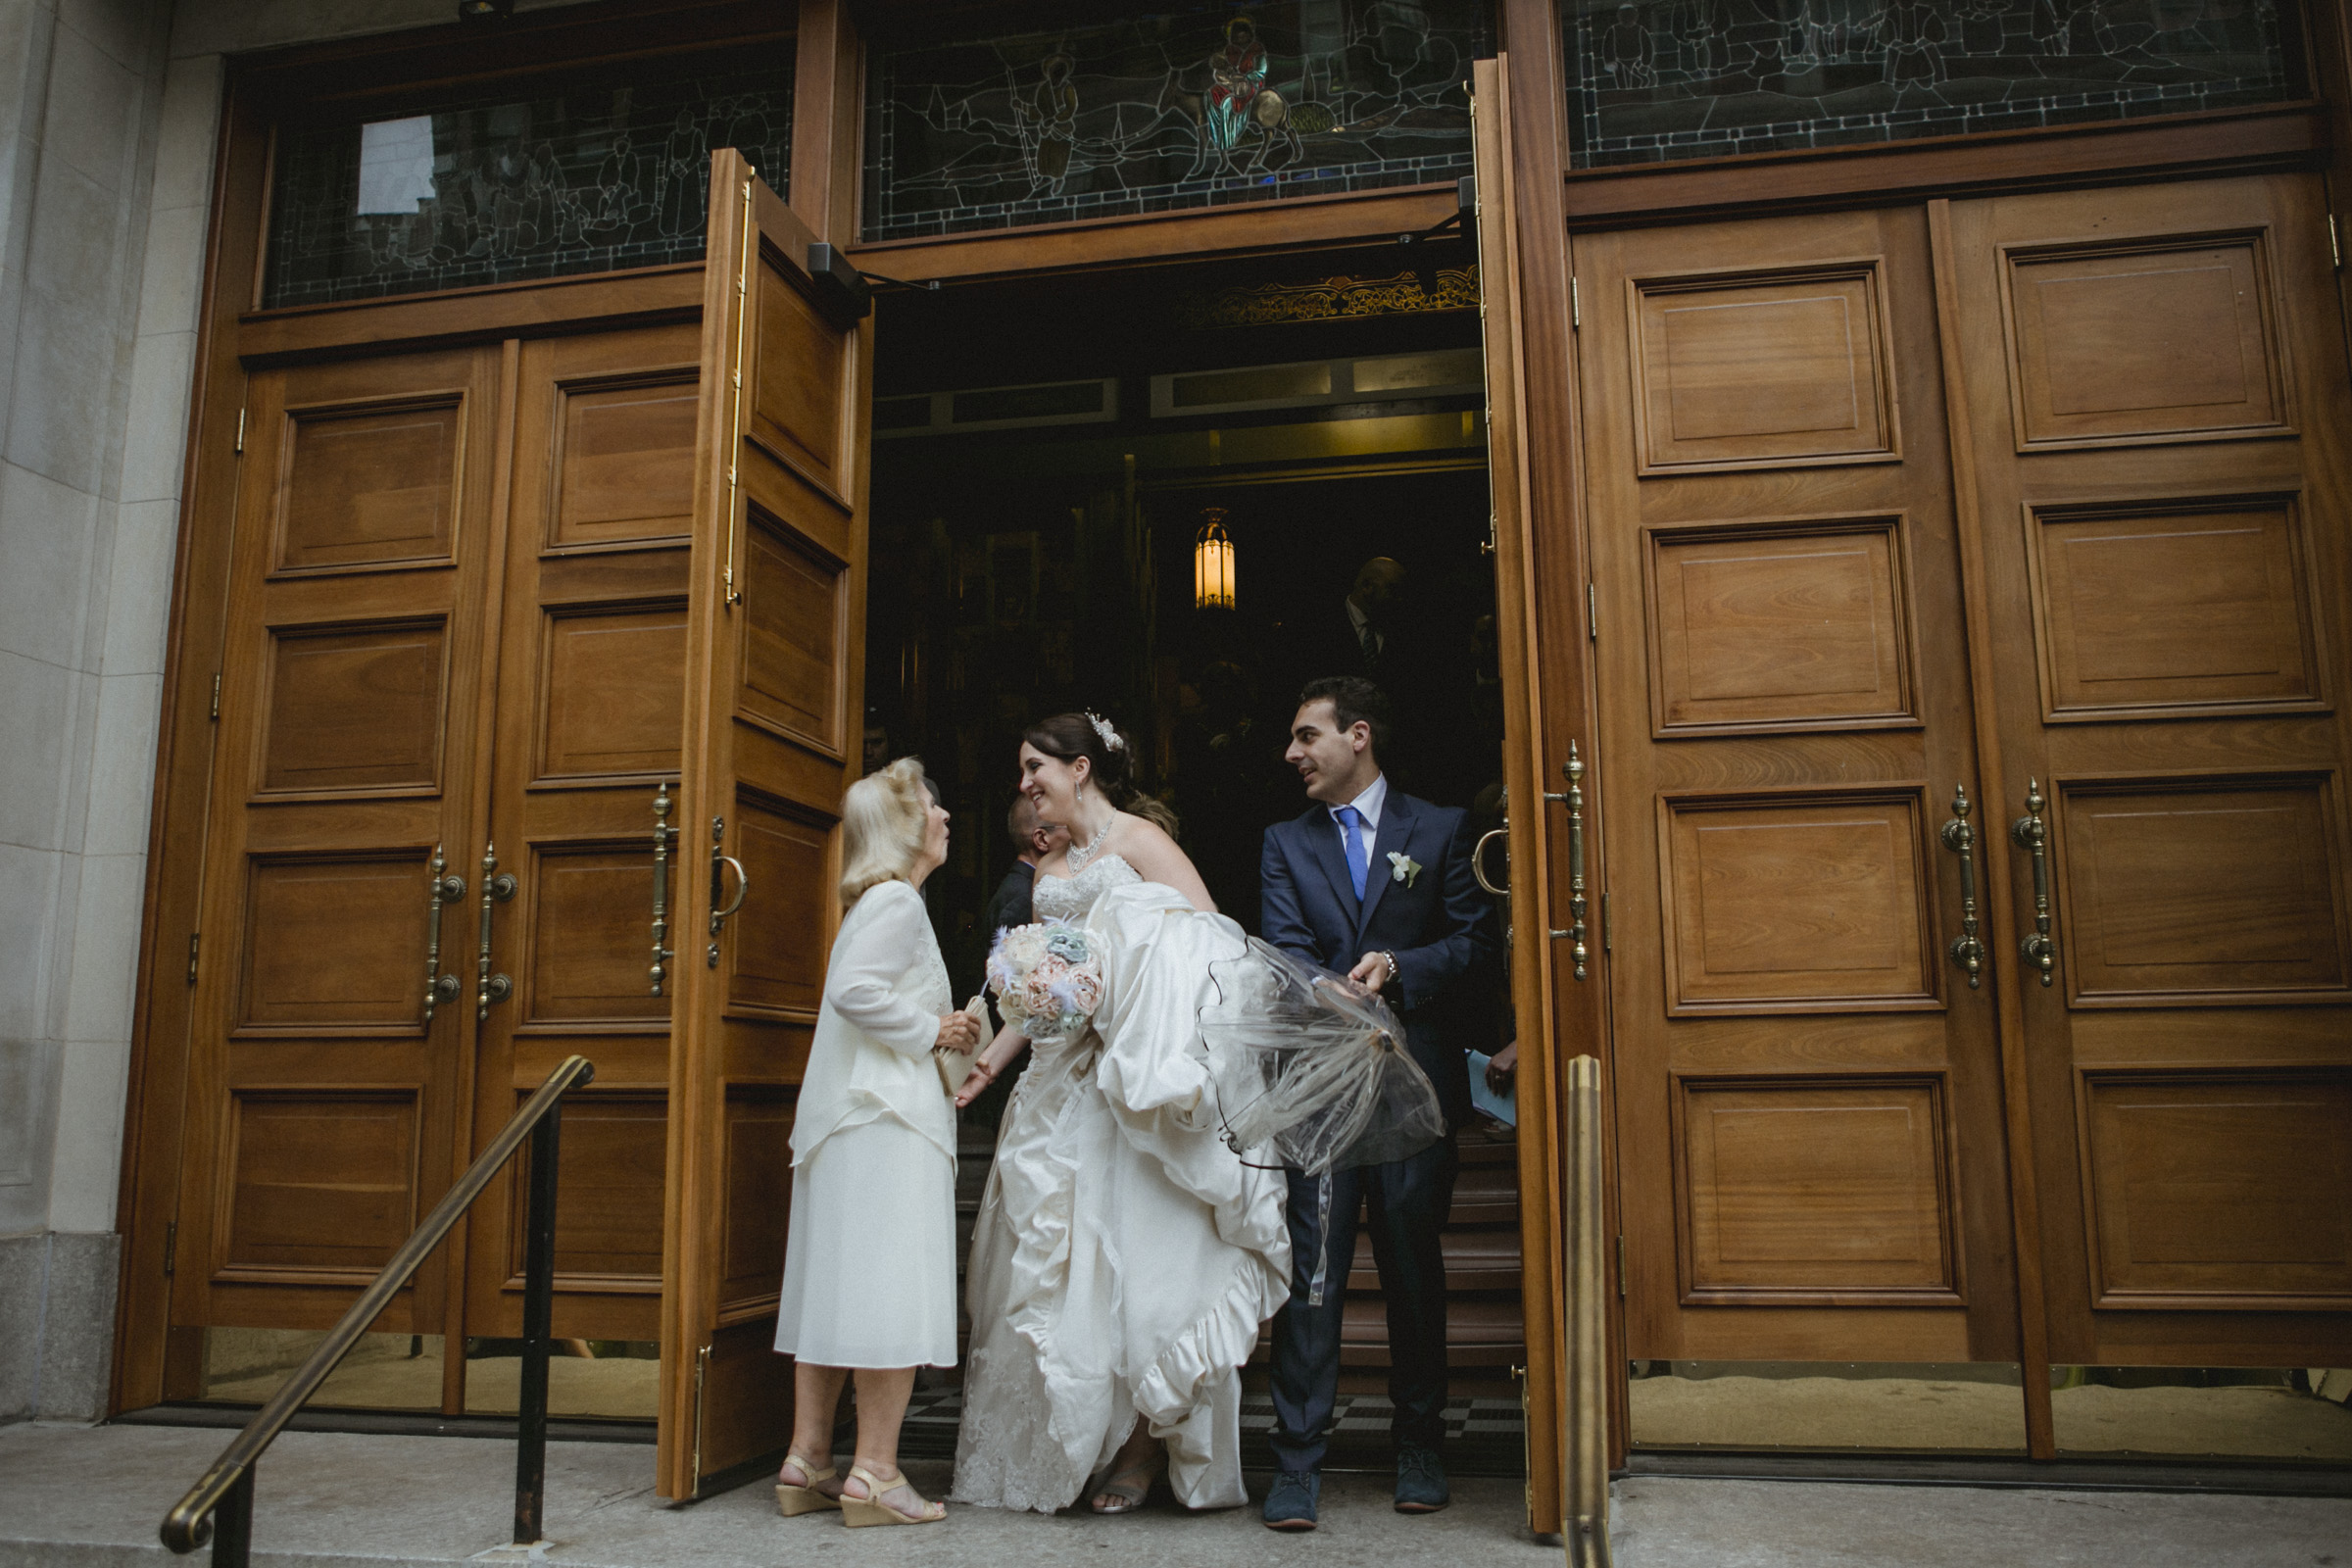 Guest congratulates newlyweds | Our Lady of Pompeii wedding | Manhattan wedding | Bronx Wedding | Cathy & Antonello's wedding | Amy Sims Photography